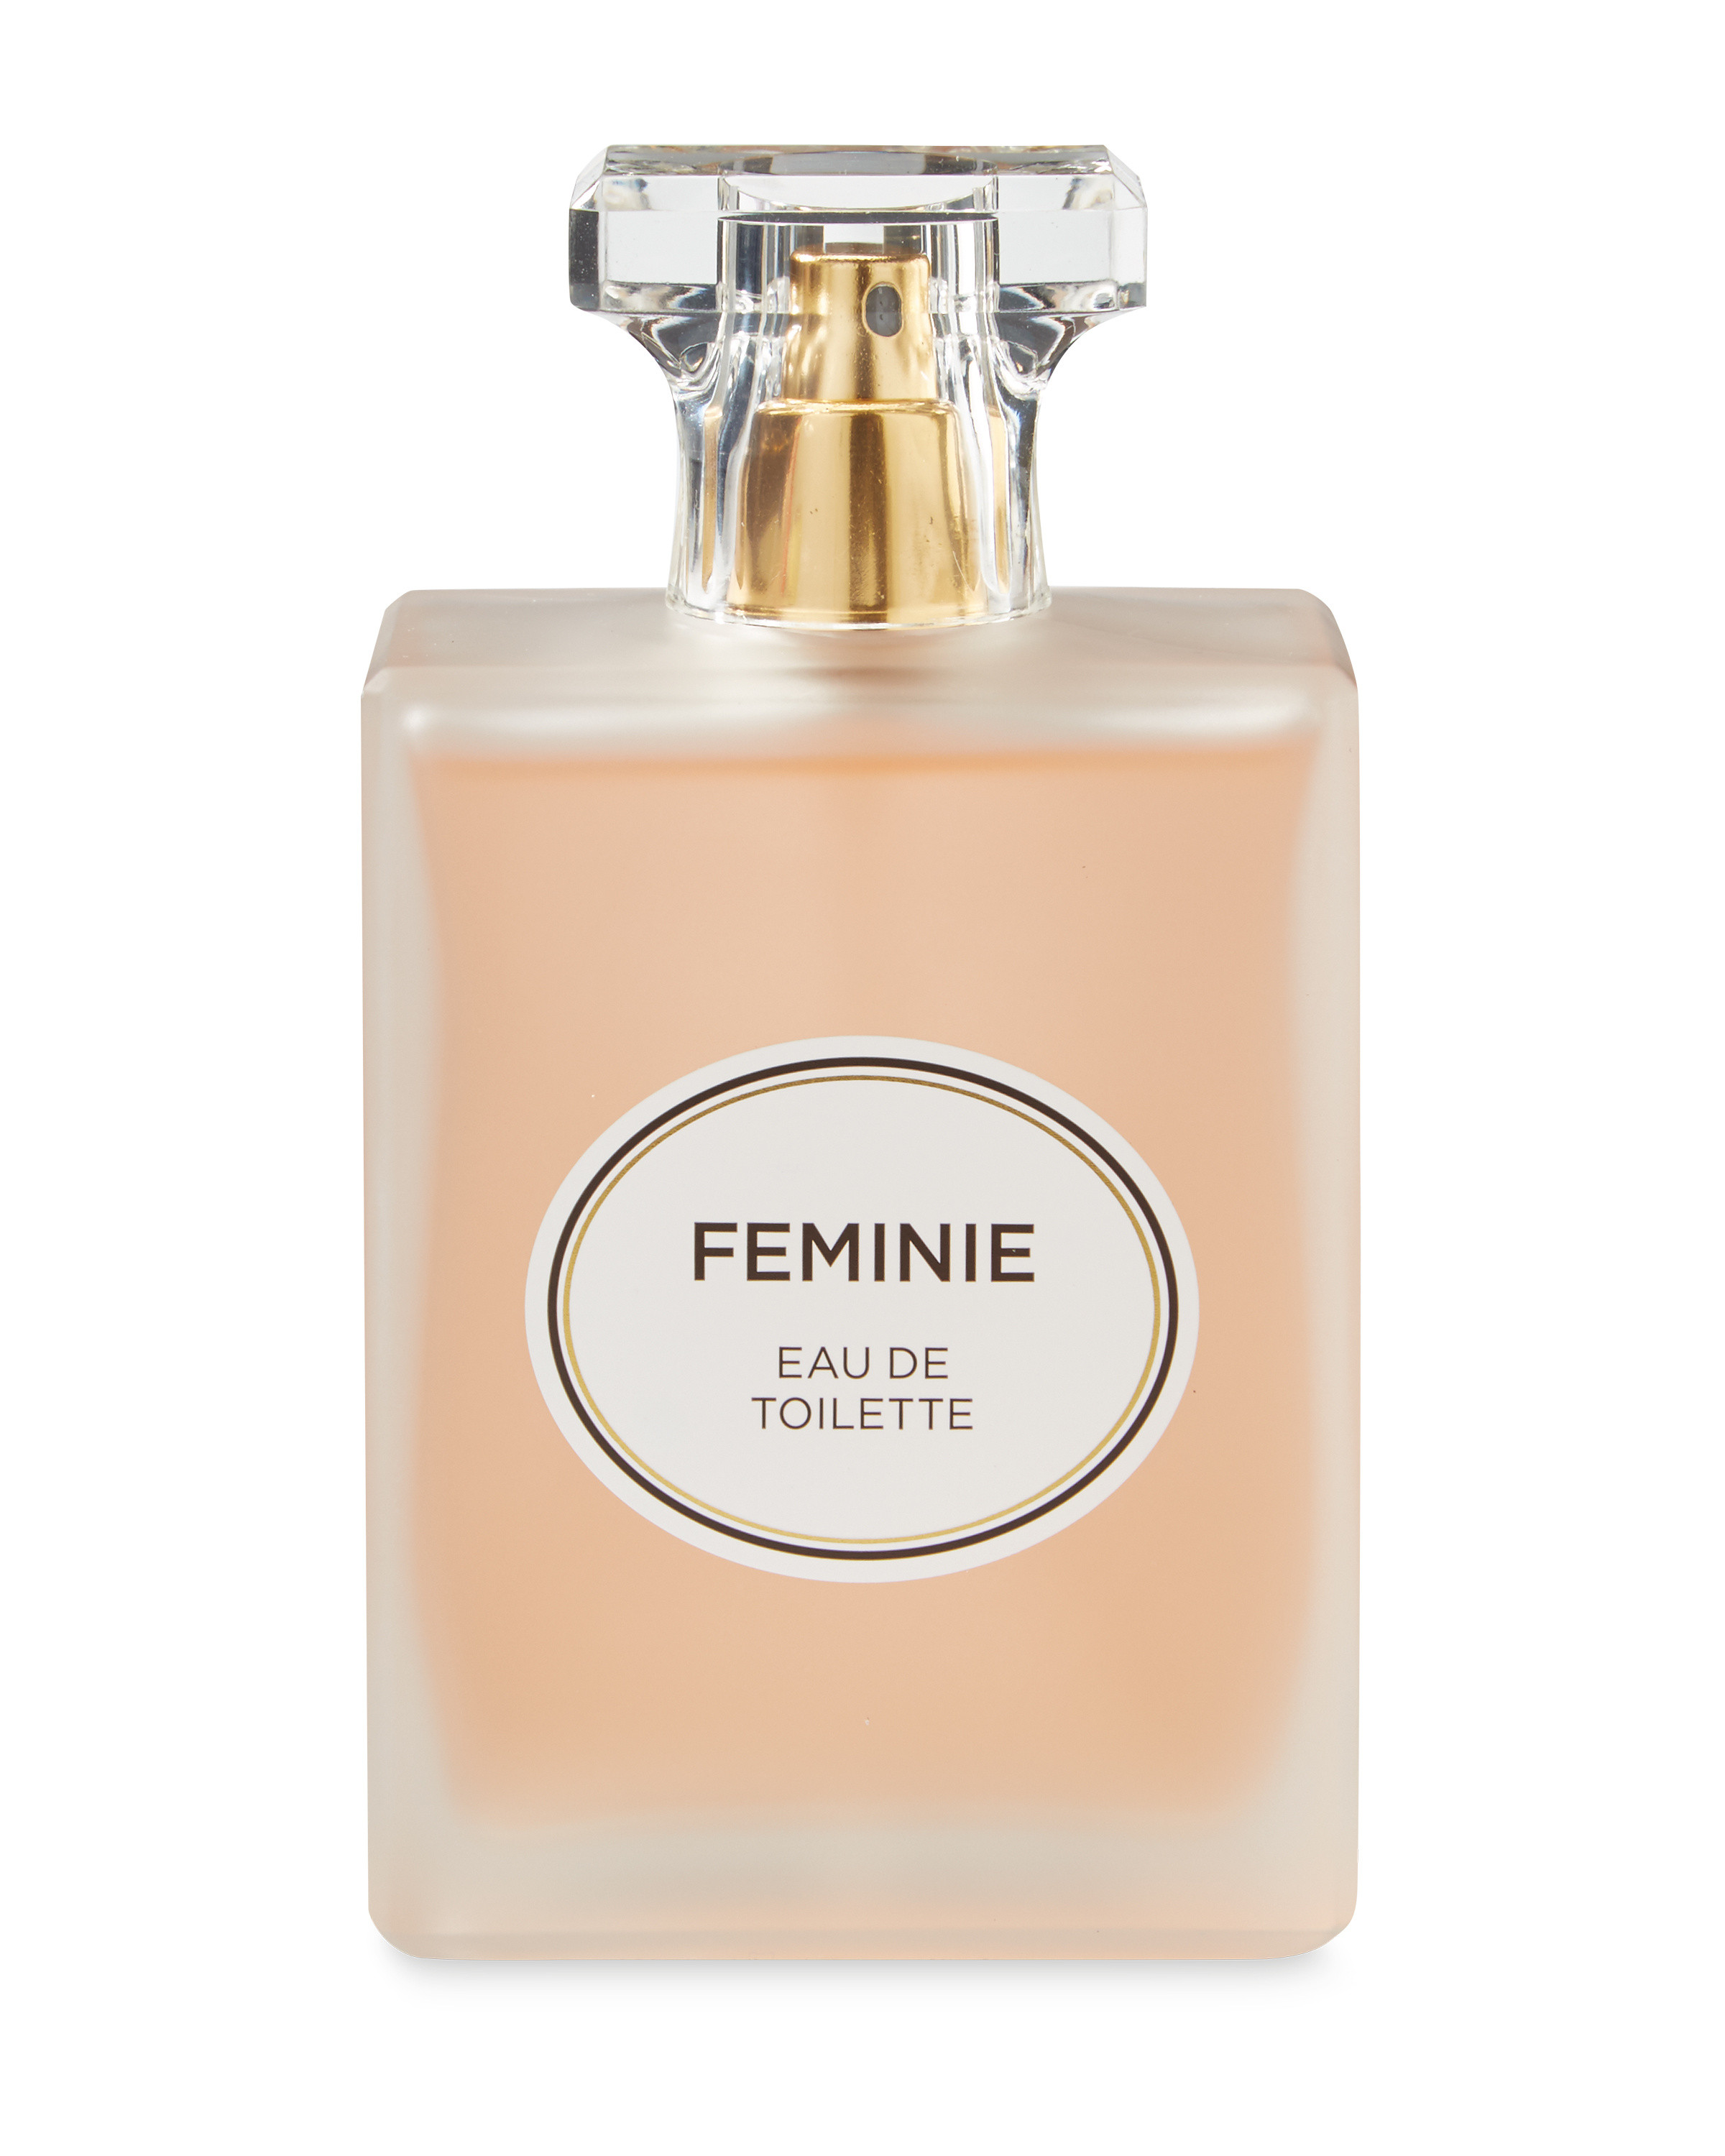 Aldi Perfume Aldi Selling Chanel No5 Dupe For Fraction Of The Price